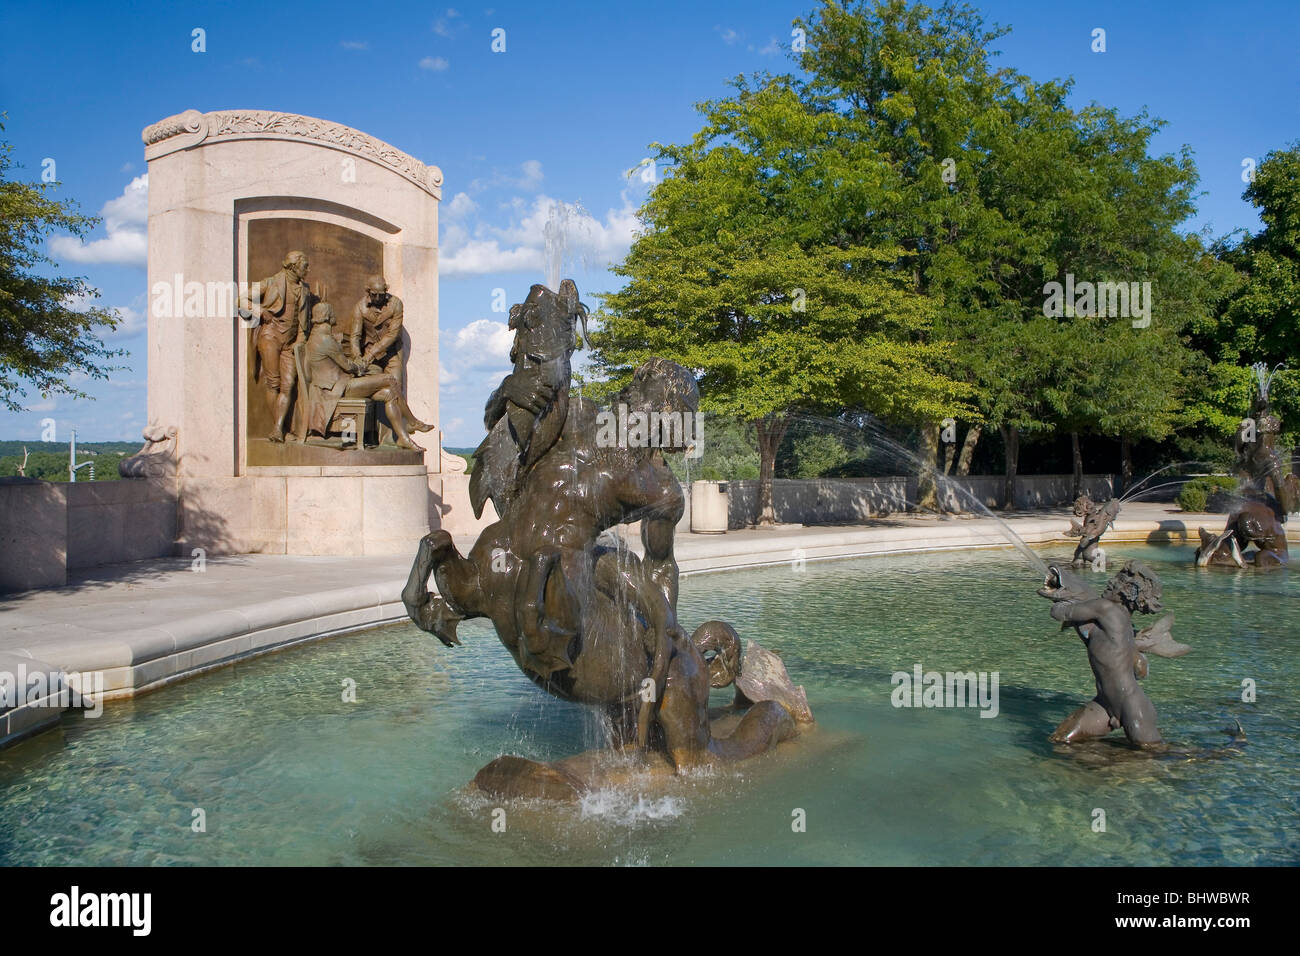 Missouri State Capitol water fountain and statues in Jefferson City, Missouri - Stock Image